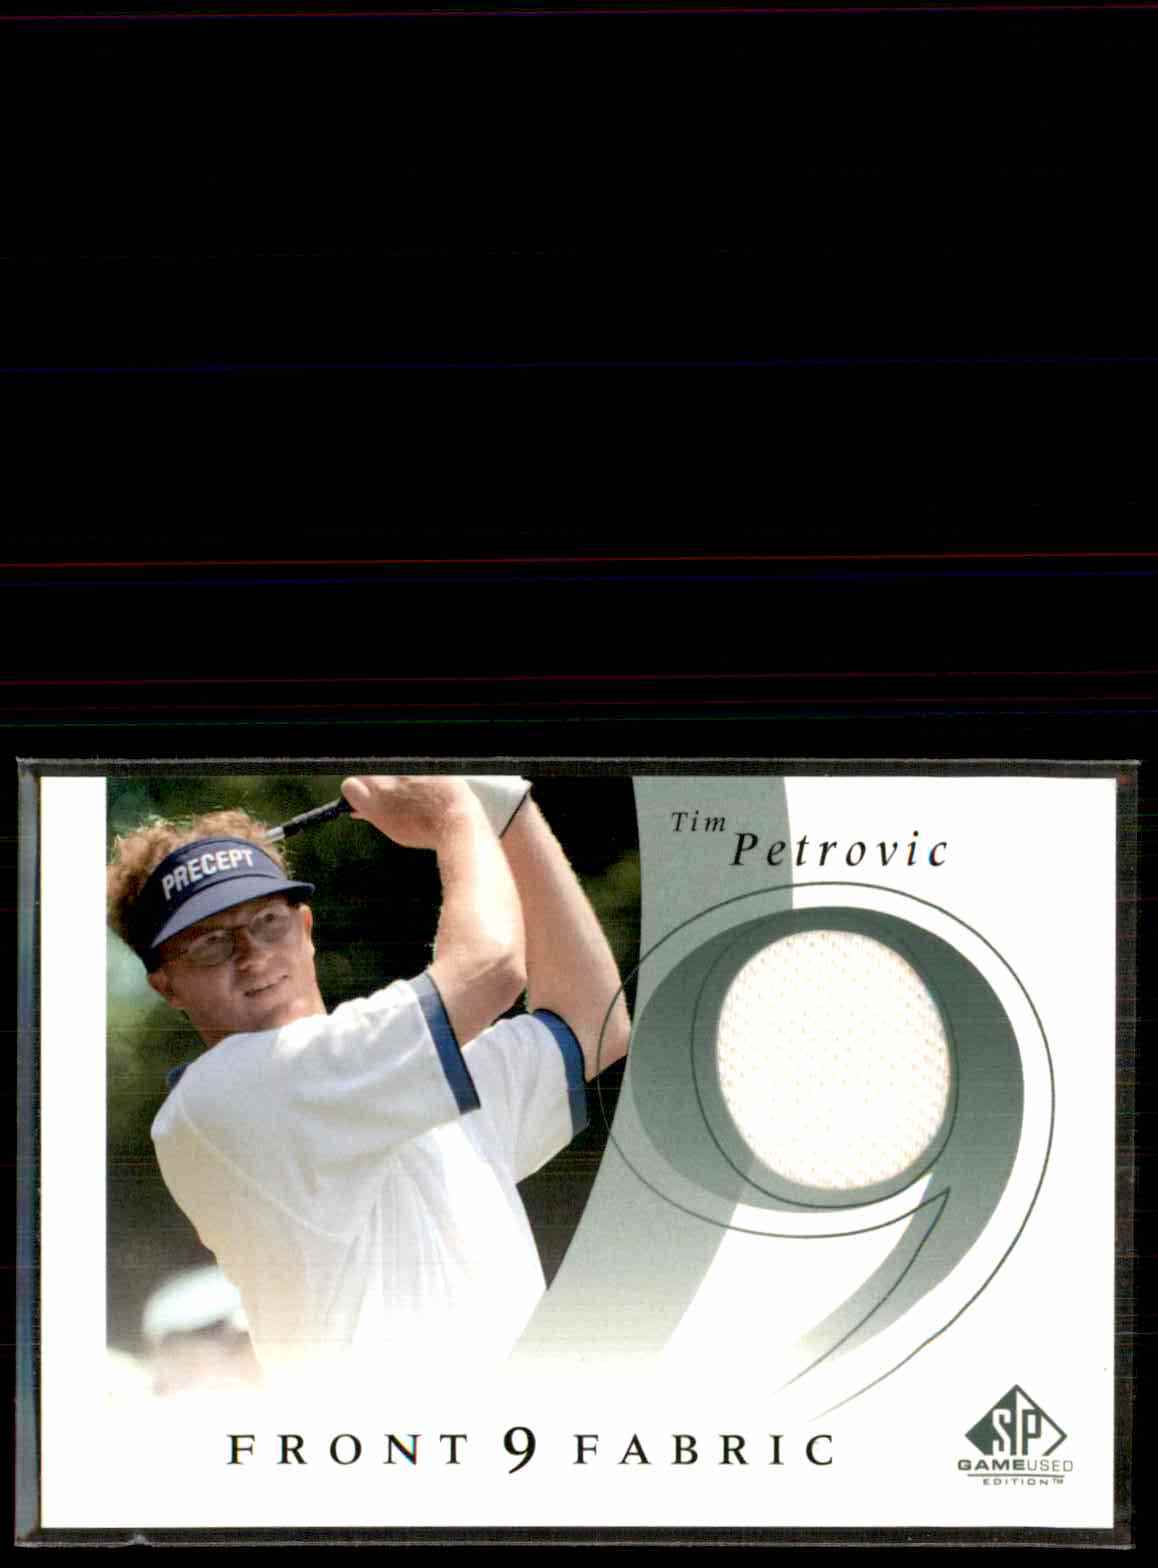 2002 SP Game Used Front 9 Fabric Tim Petrovic #TP card front image